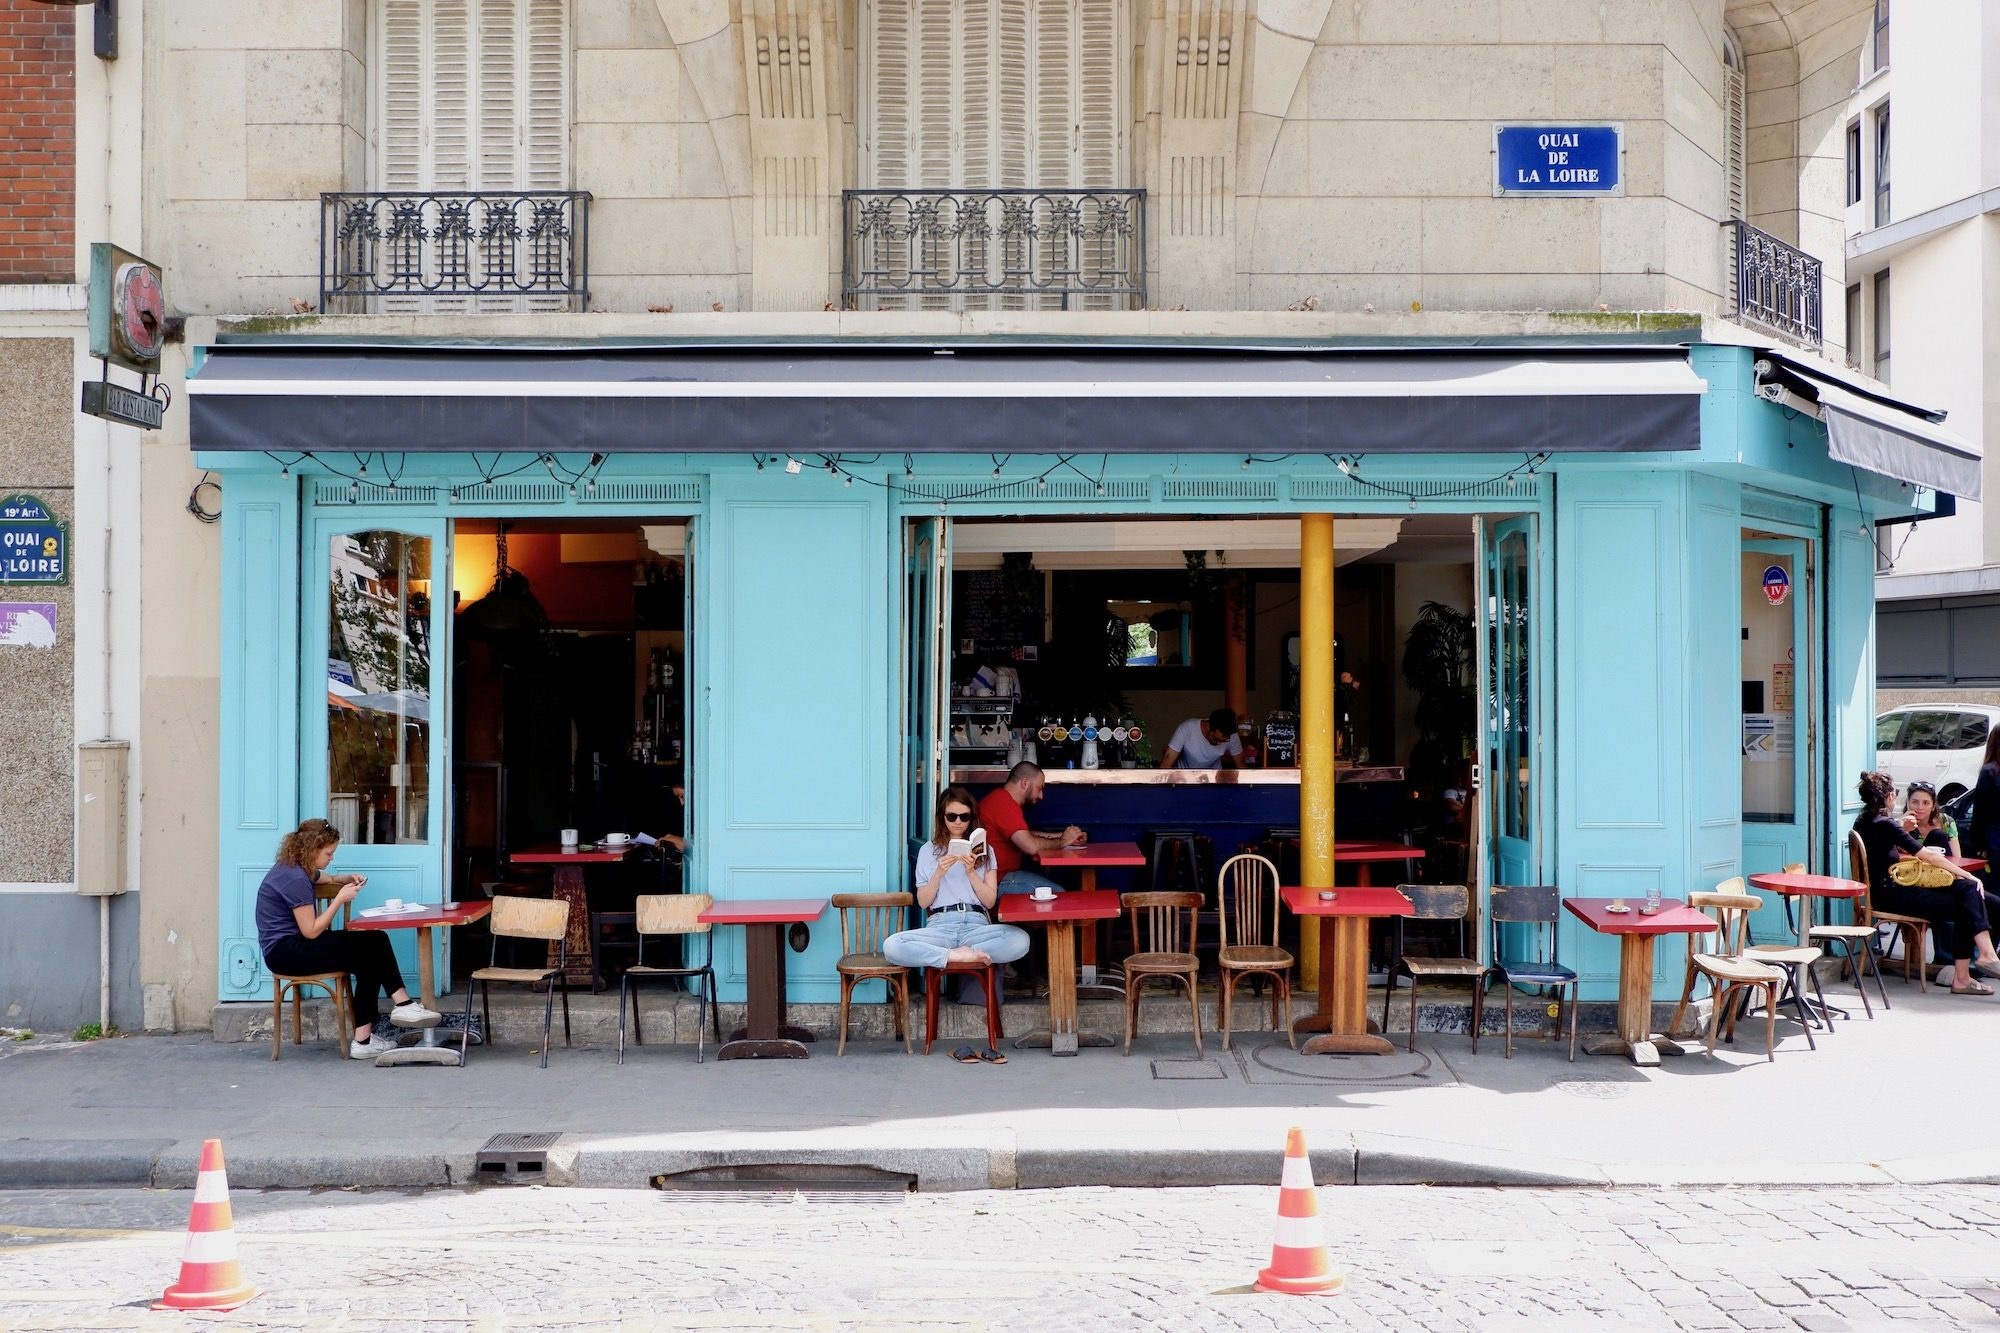 BarOurcq with its bright blue exteriors is one of the staple bars in the 19th arrondissement of Paris near the canal.